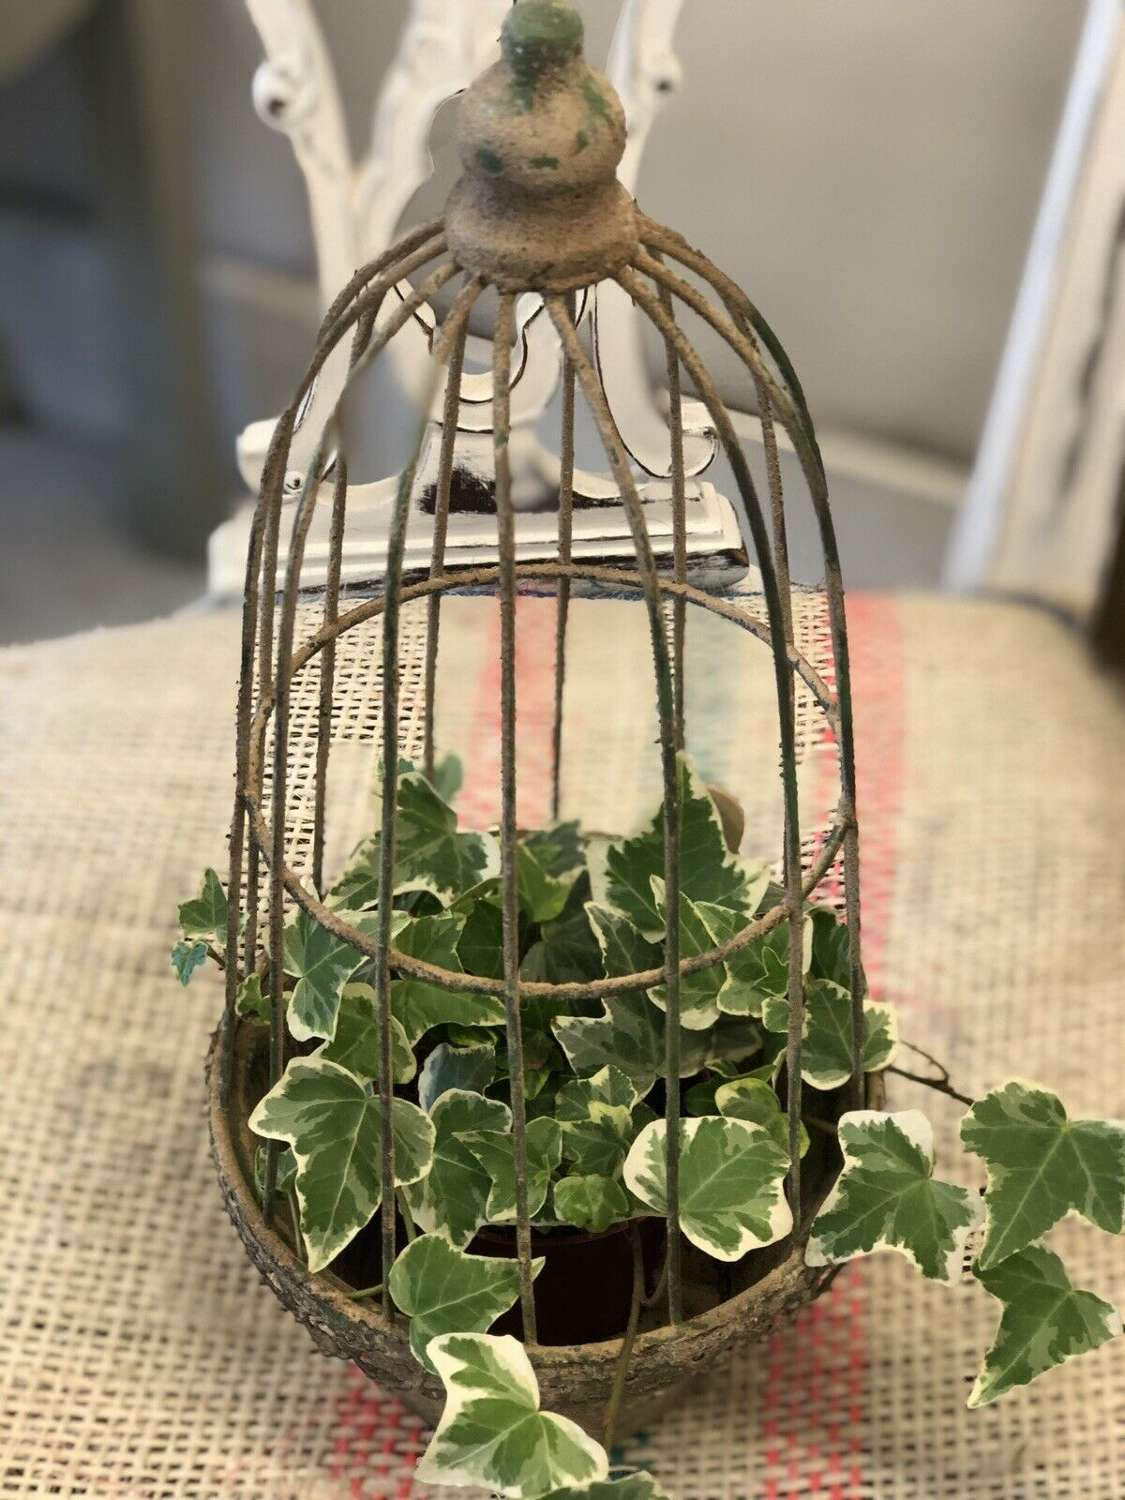 Vintage style caged planter